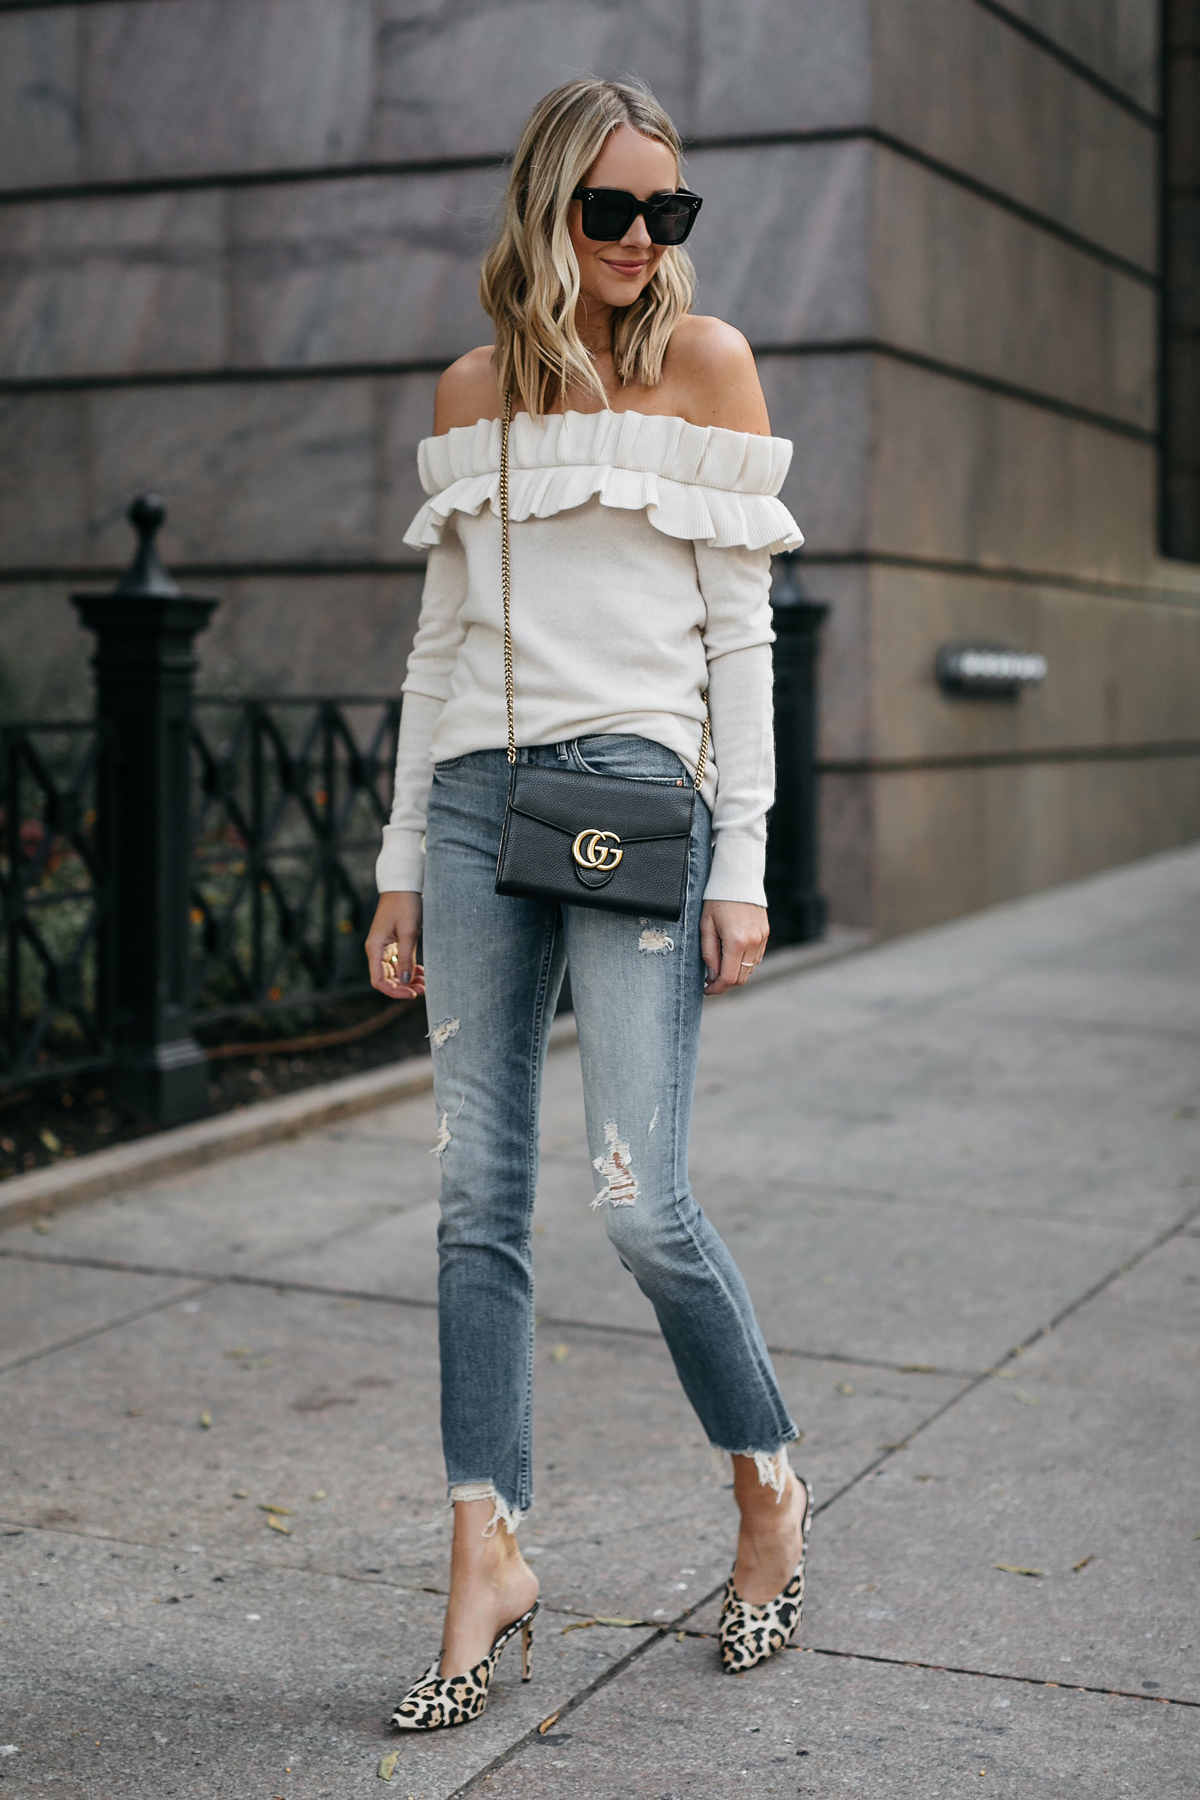 Blonde Woman Wearing Club Monaco Ruffle Off-the-shoulder sweater Mother denim ripped jeans leopard heels gucci marmont handbag Fashion Jackson Dallas Blogger Fashion Blogger Street Style